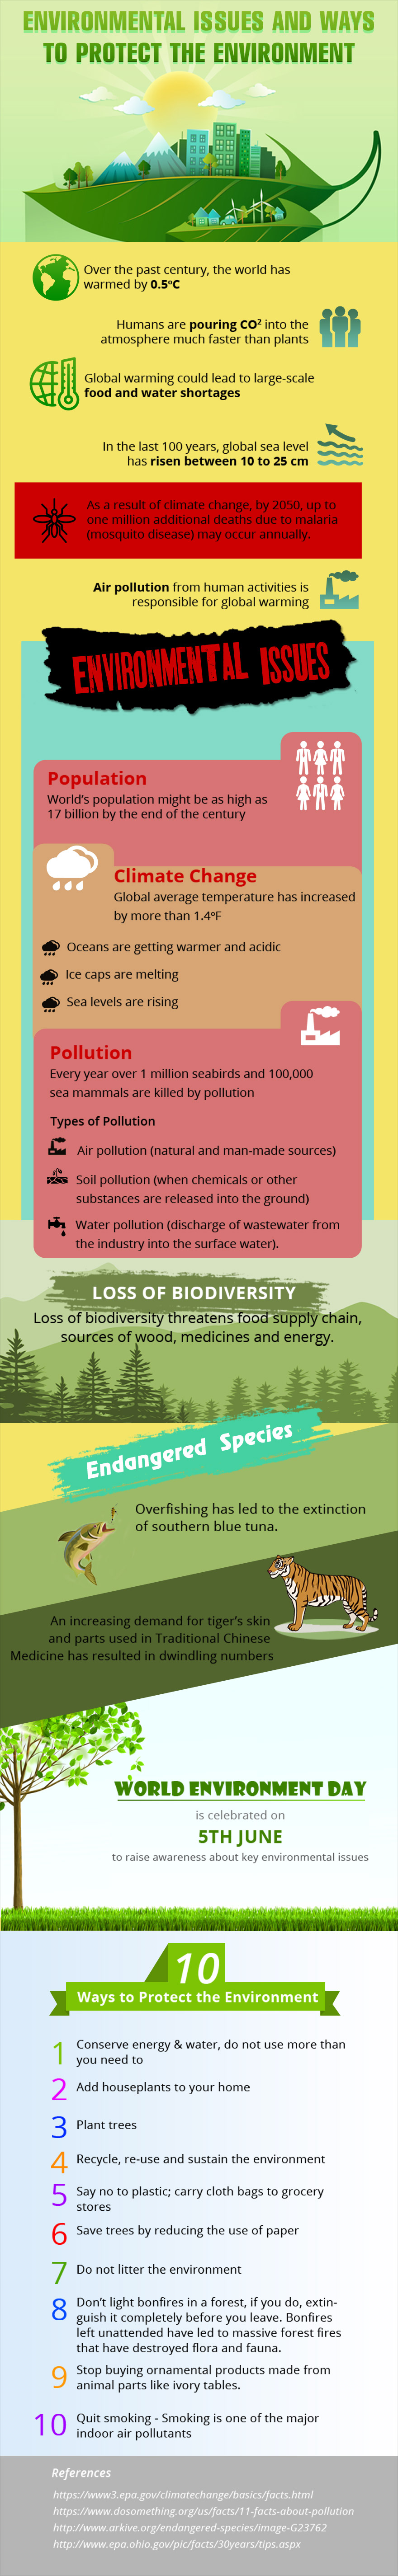 Environmental Issues and Ways To Protect The Environment